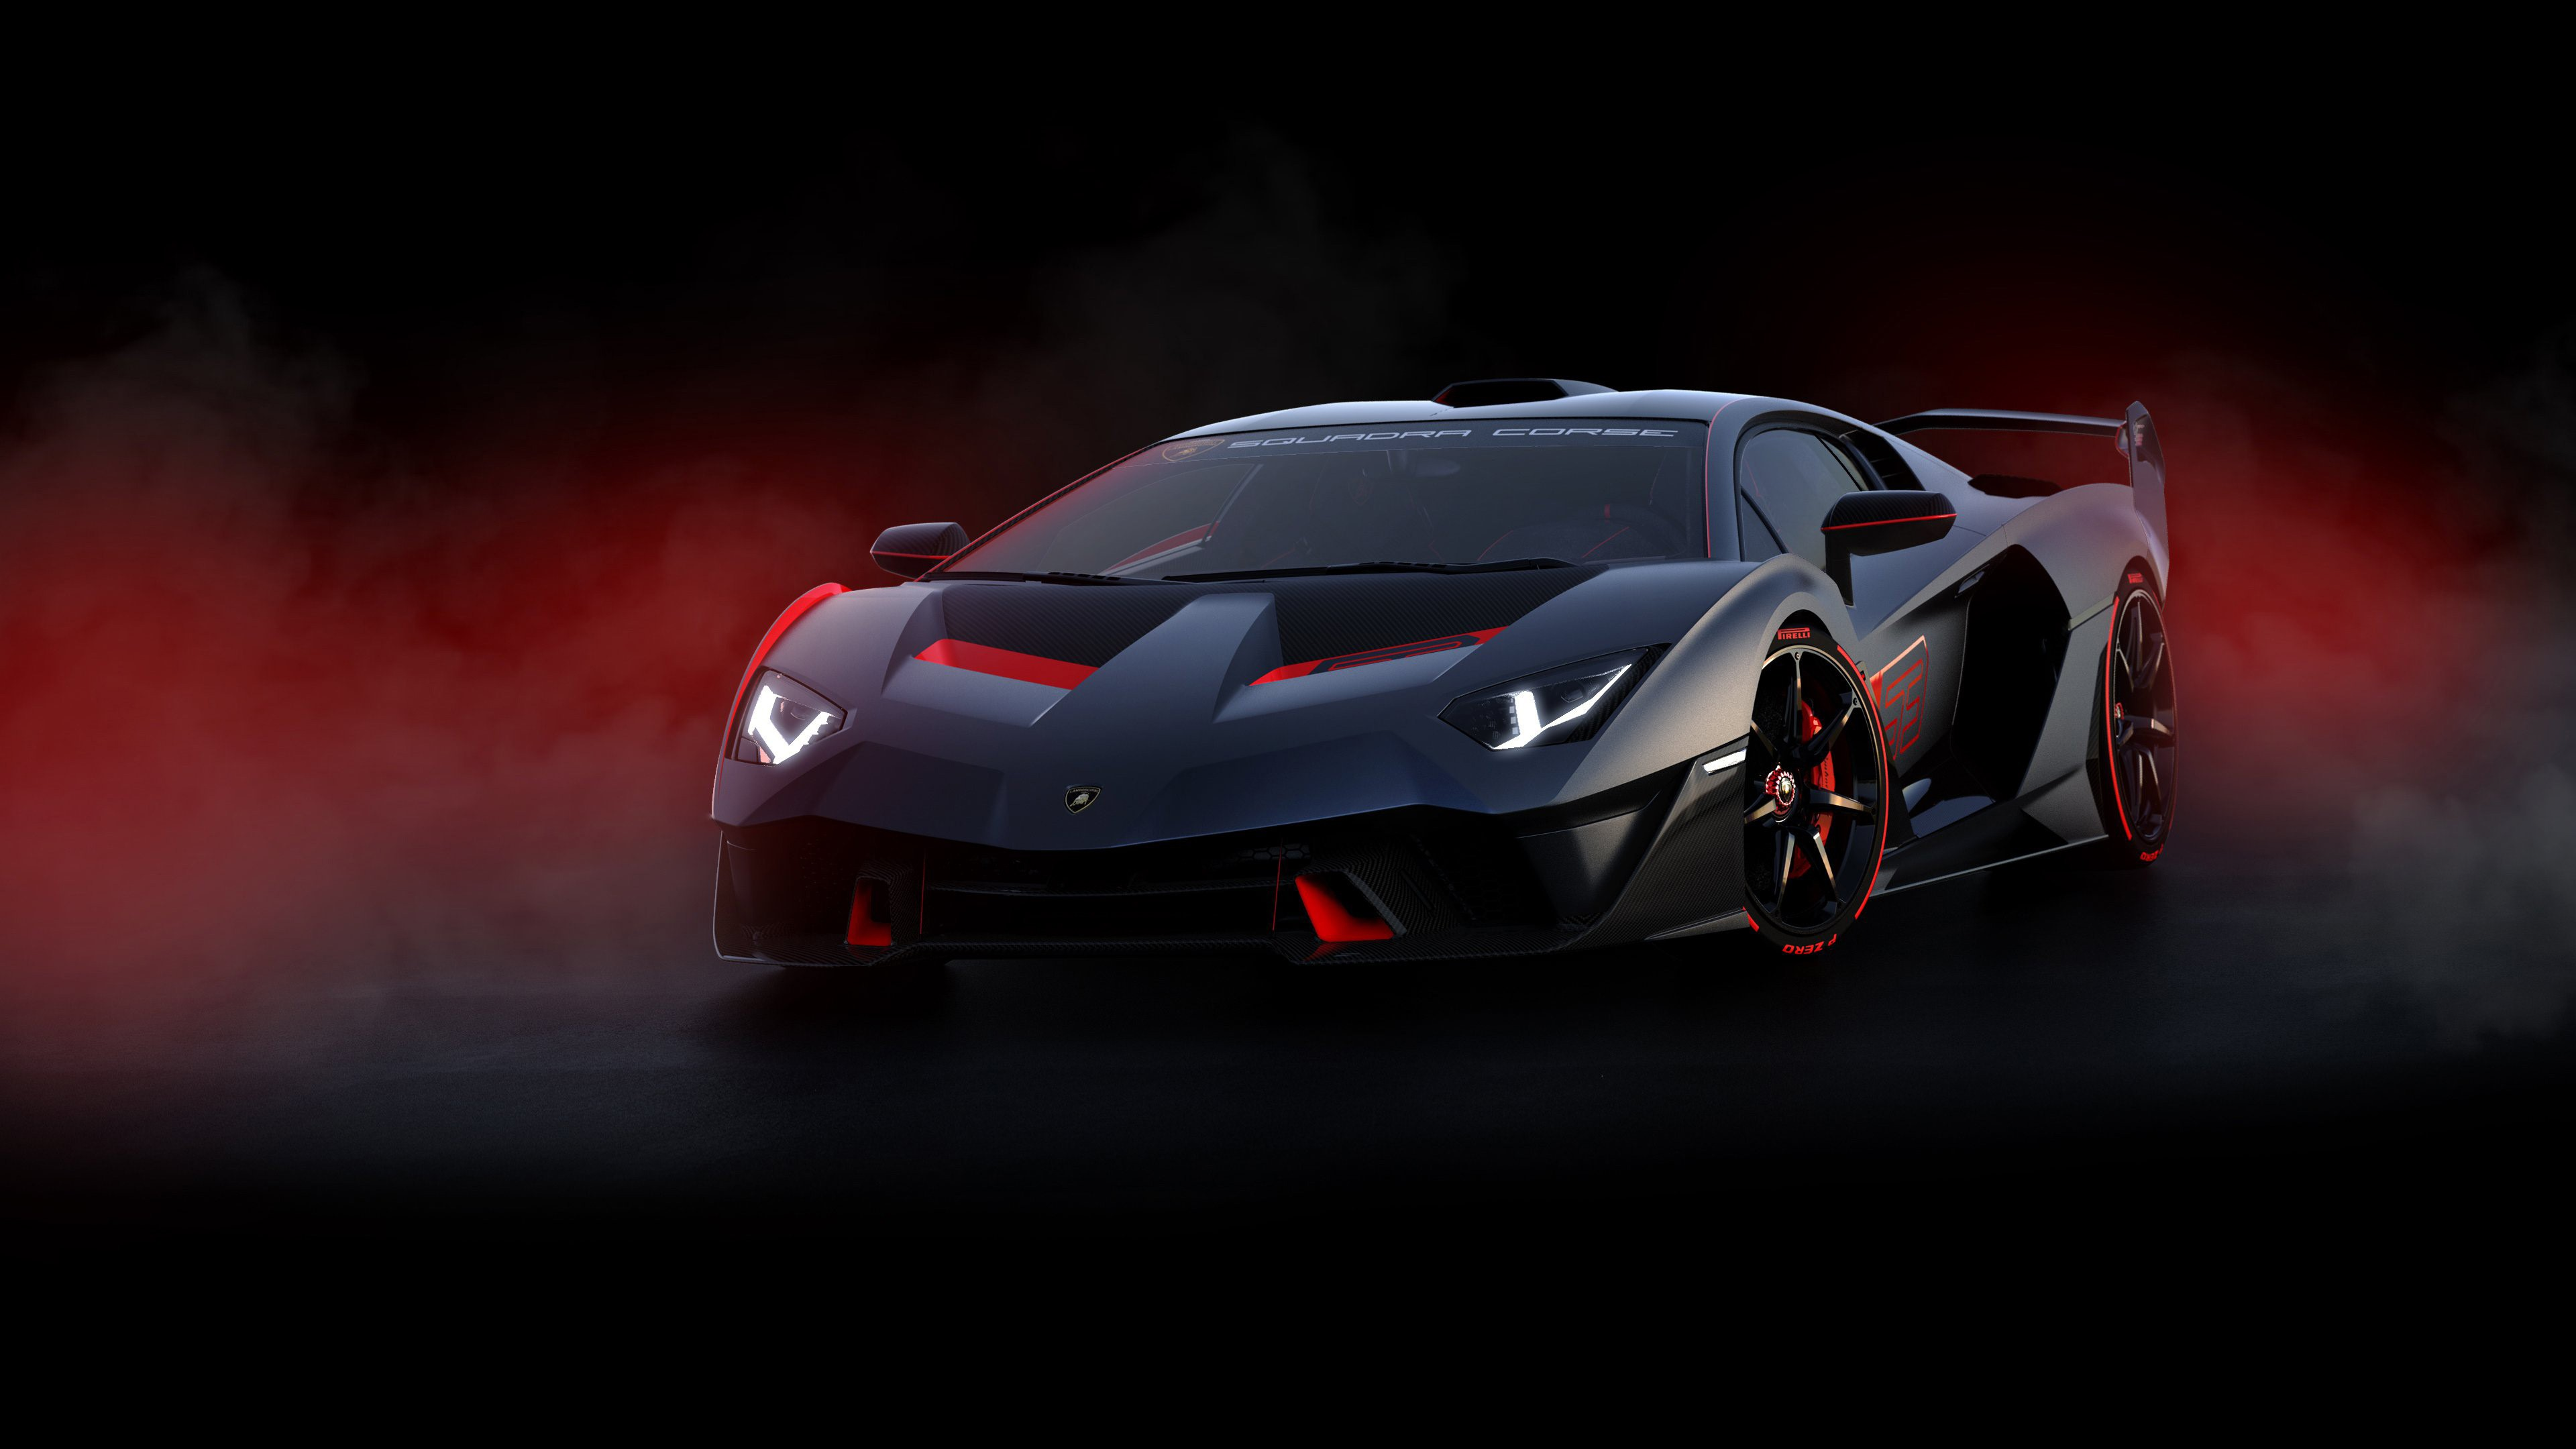 There are plenty of models available, and they'recheaper than ever. 4k Car Wallpaper Of 2019 Lamborghini Sc18 Alston 4k Wallpapers Of Cars 3840x2160 Wallpaper Teahub Io